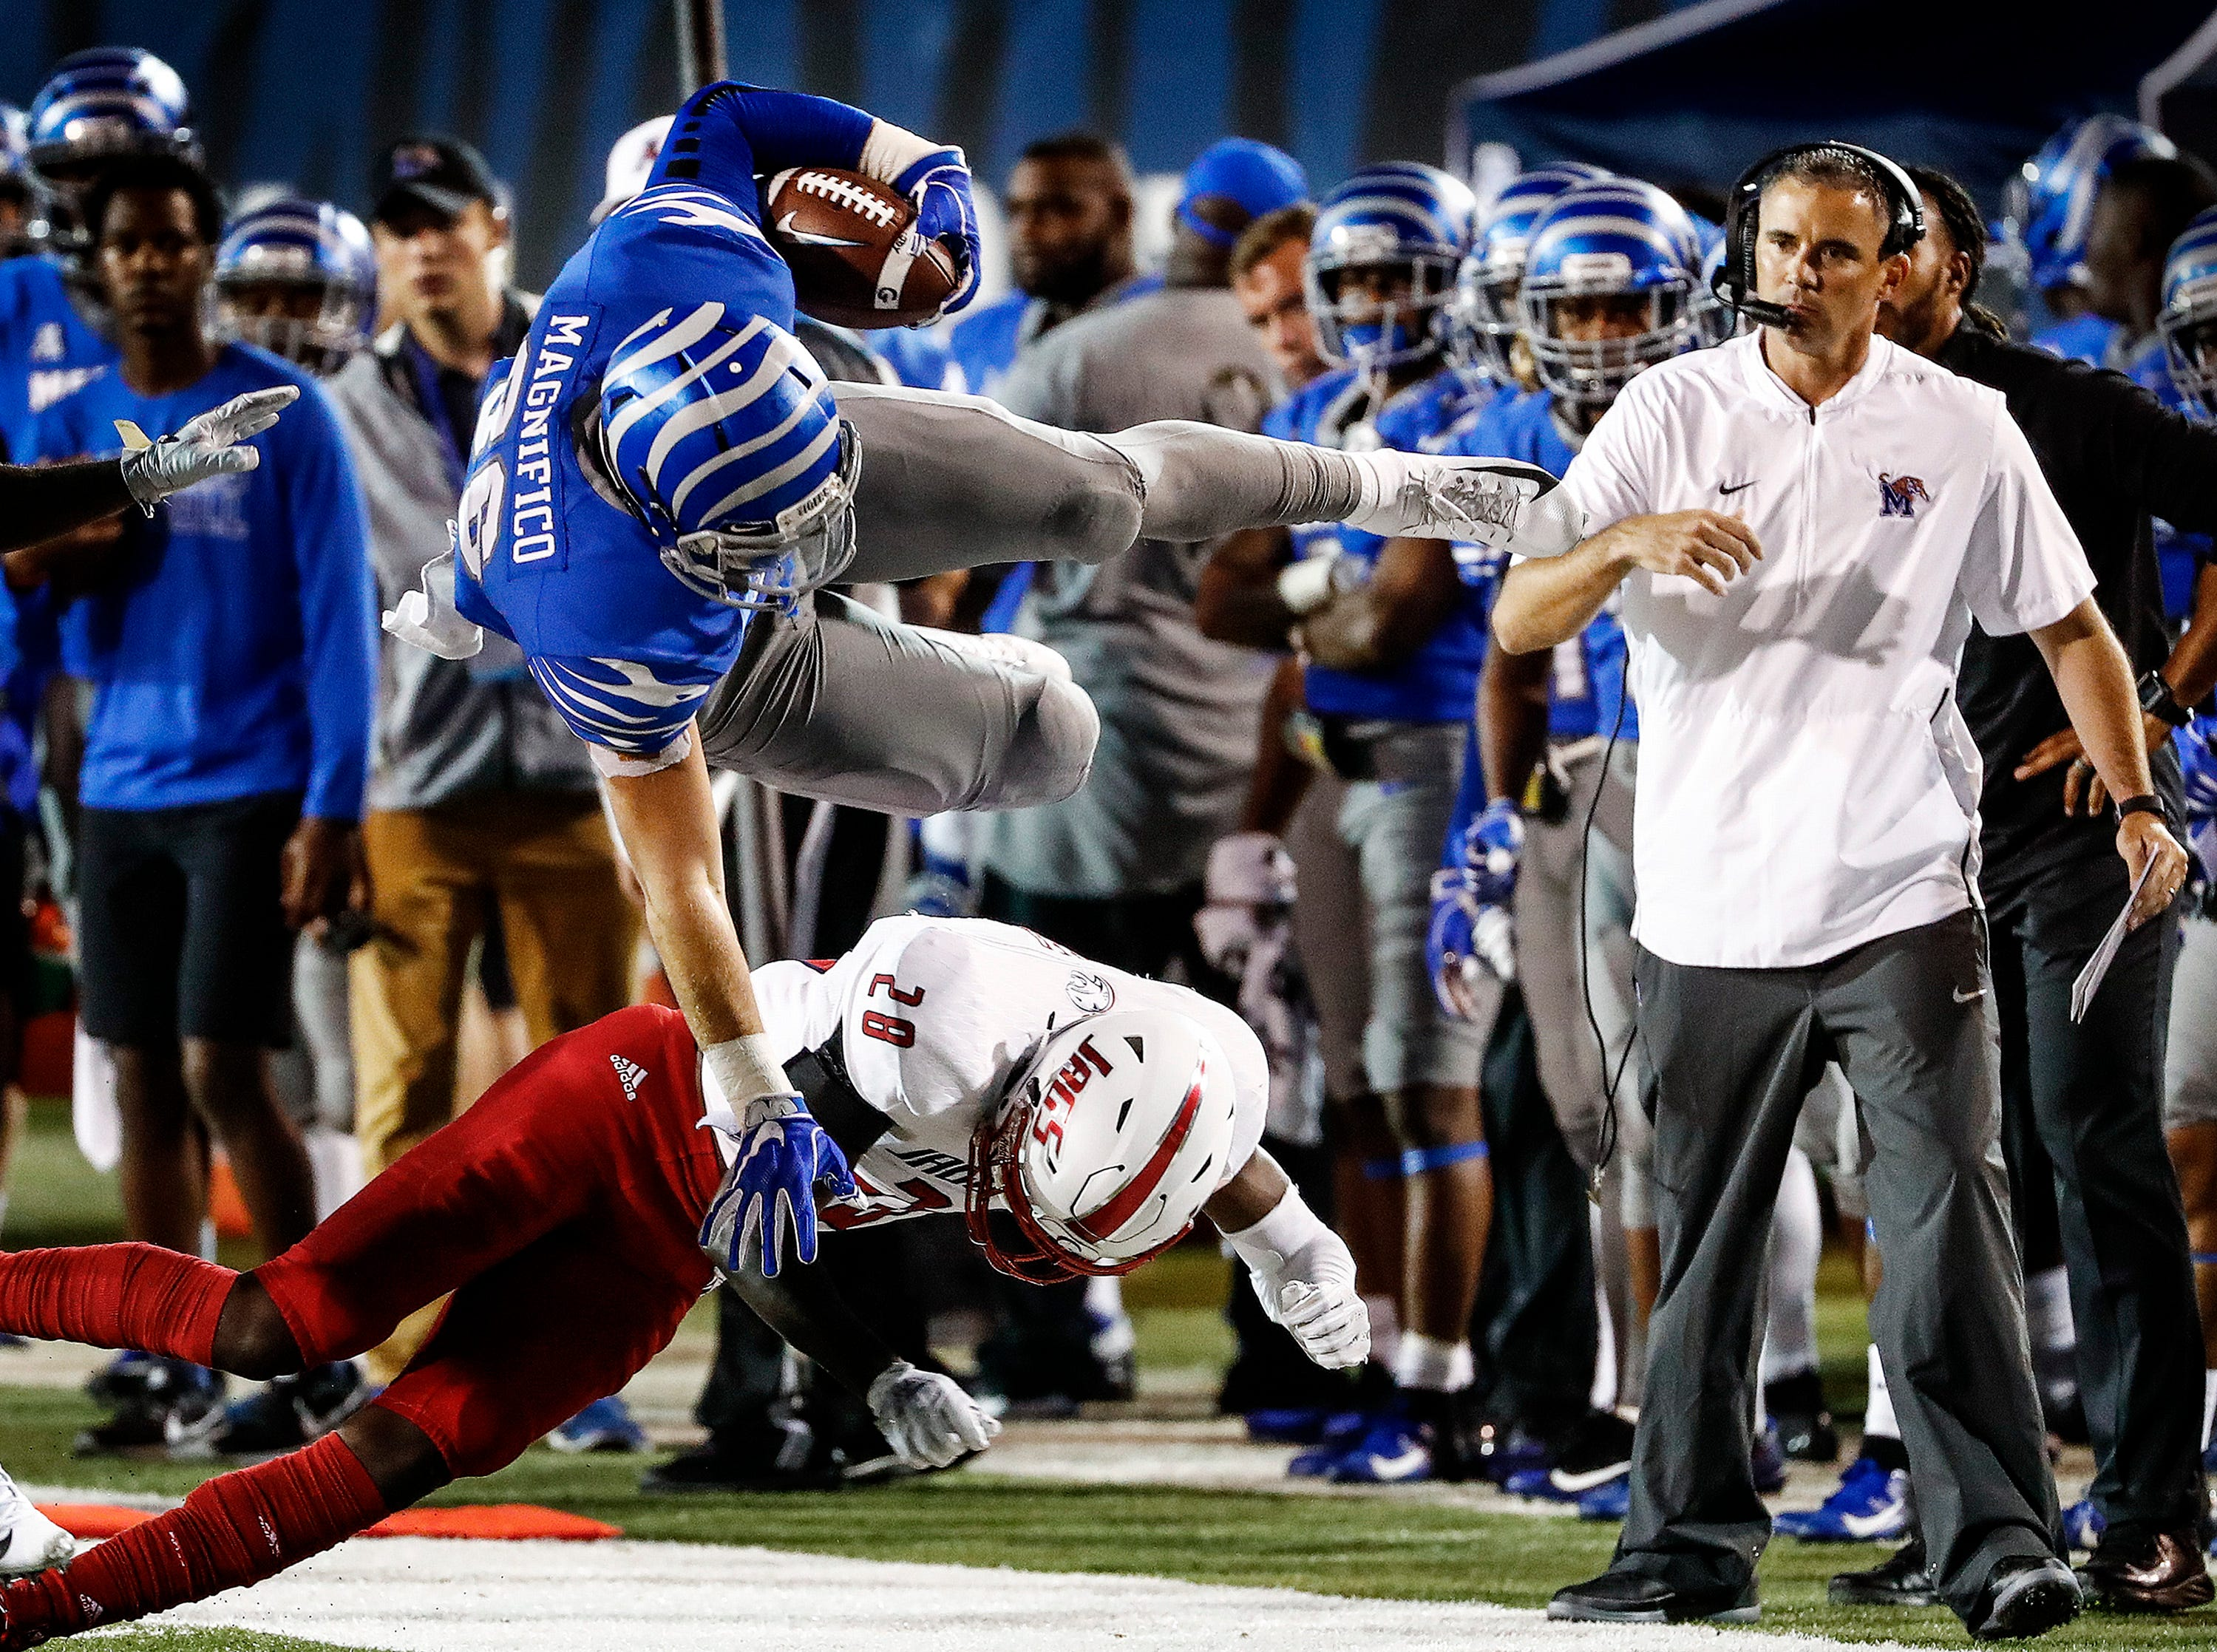 Memphis tight end Joey Magnifico (top) dives over South Alabama defender Travis Reed (bottom) after gaining a first down during action in Memphis, Tenn., Saturday, September 22, 2018.